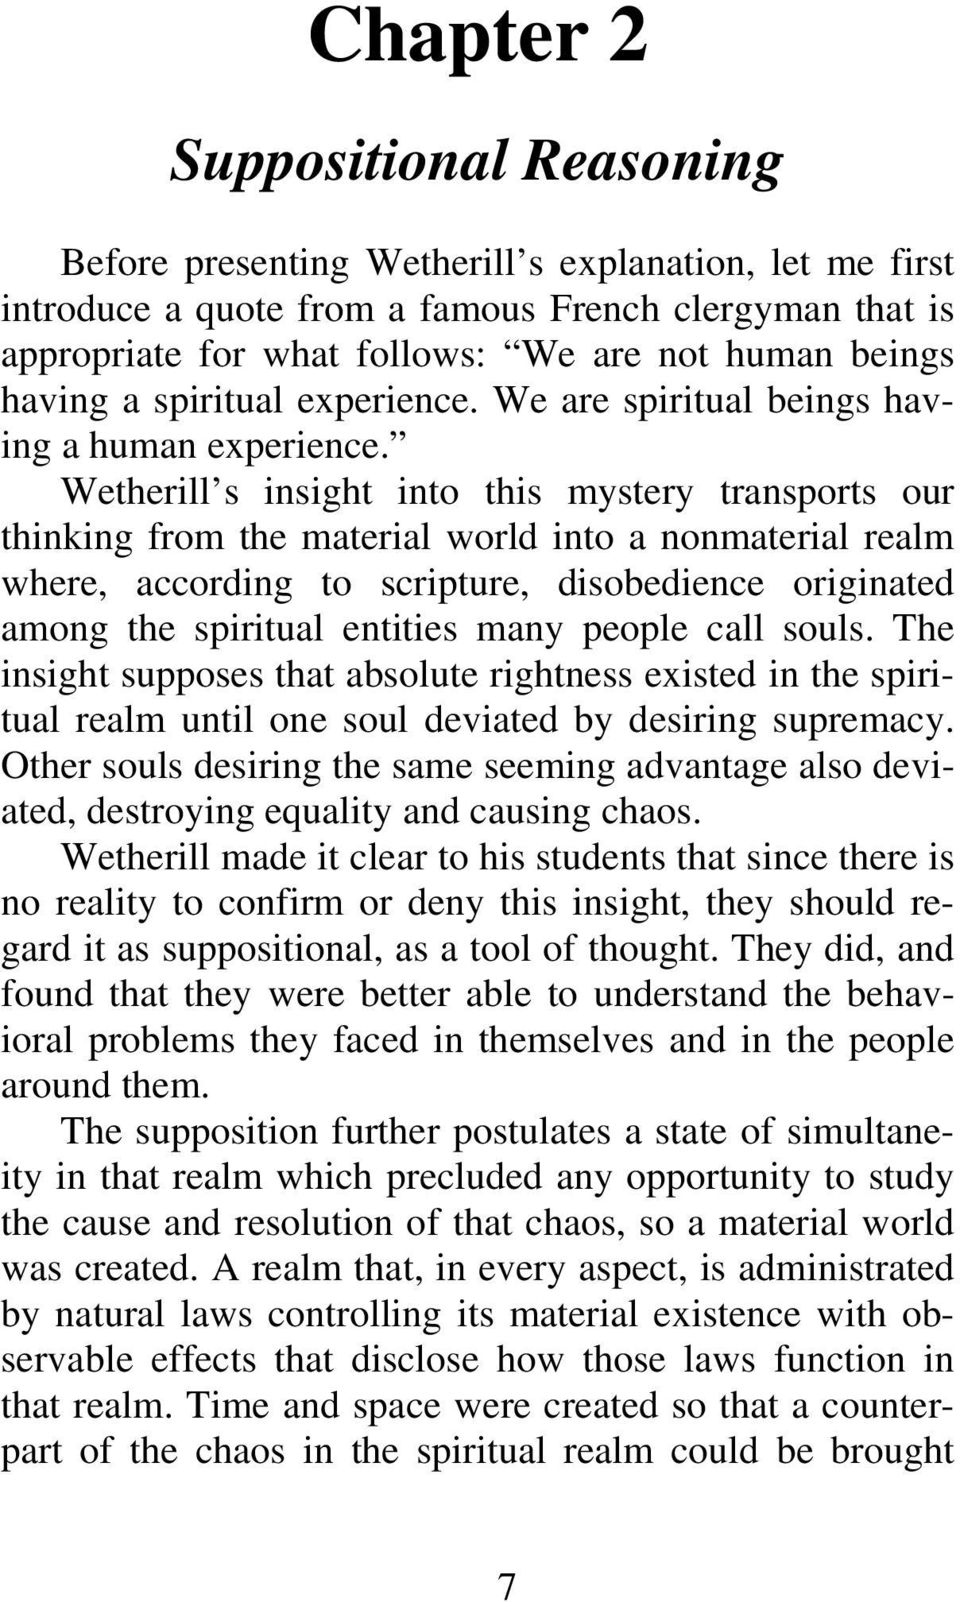 Wetherill s insight into this mystery transports our thinking from the material world into a nonmaterial realm where, according to scripture, disobedience originated among the spiritual entities many